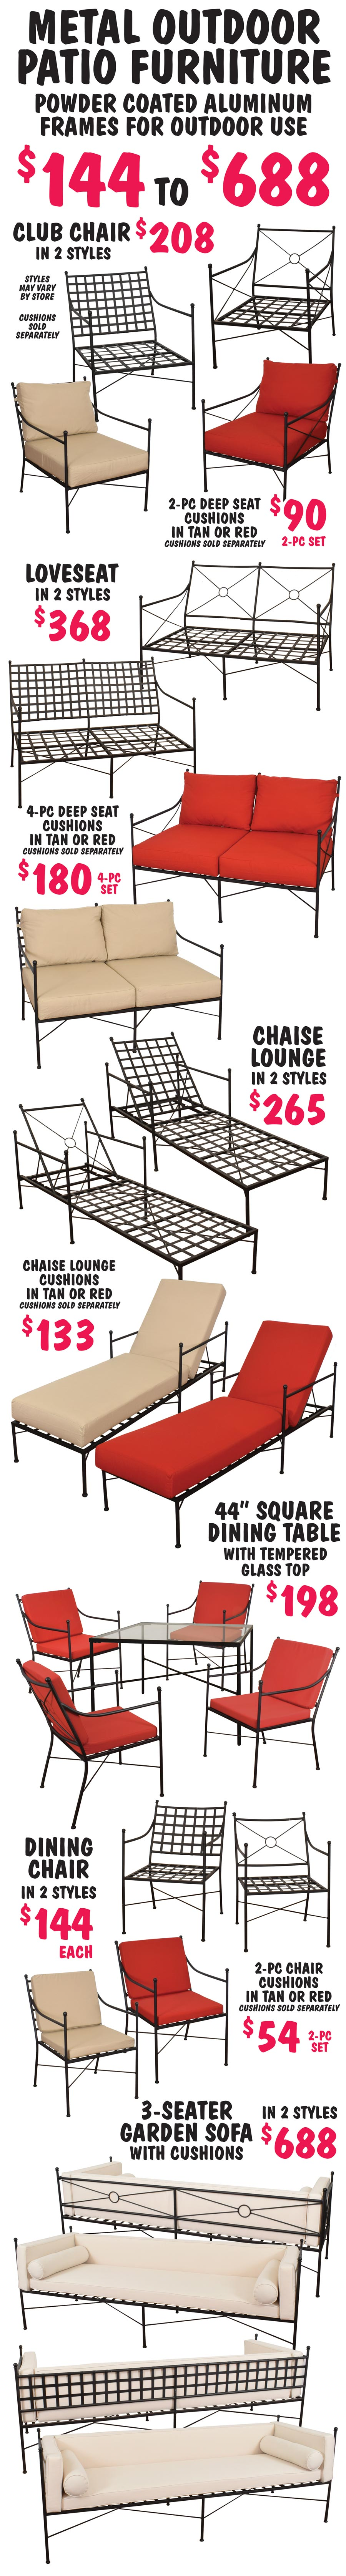 Metal Outdoor Patio Furniture $144 to $368 in 2 styles. Club Chairs $208, Chaise Lounges $265, Loveseats $368, 44 inch square Dining Table with tempered glass top $198, Dining Chairs $144. Powder coated aluminum frames for outdoor use. Cushions sold separately.